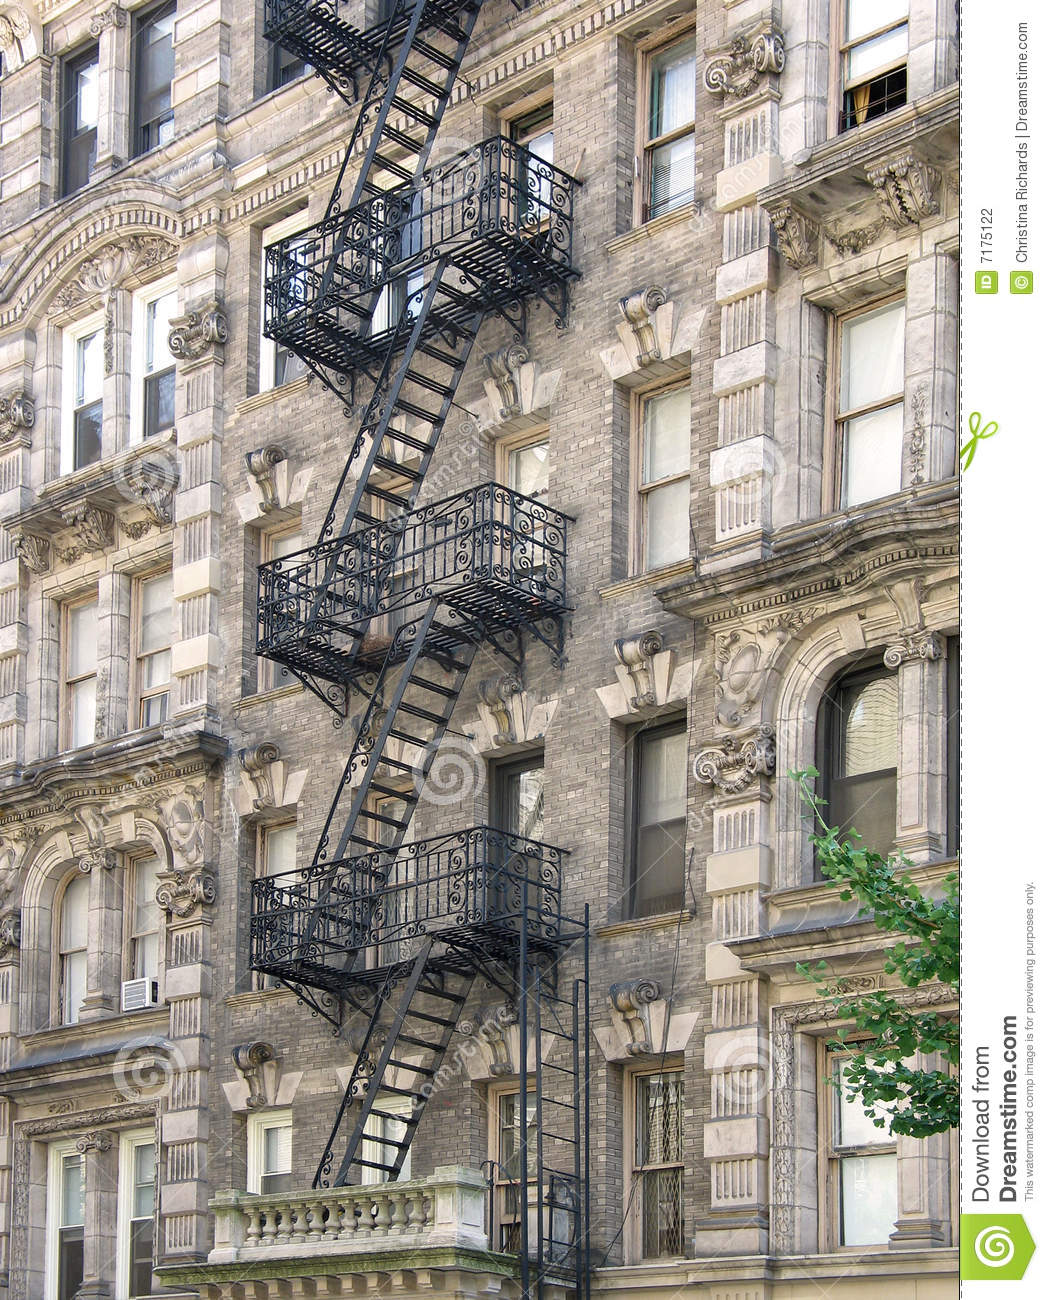 Nyc Apartment Building: Harlem Apartment Building Stock Photo. Image Of City